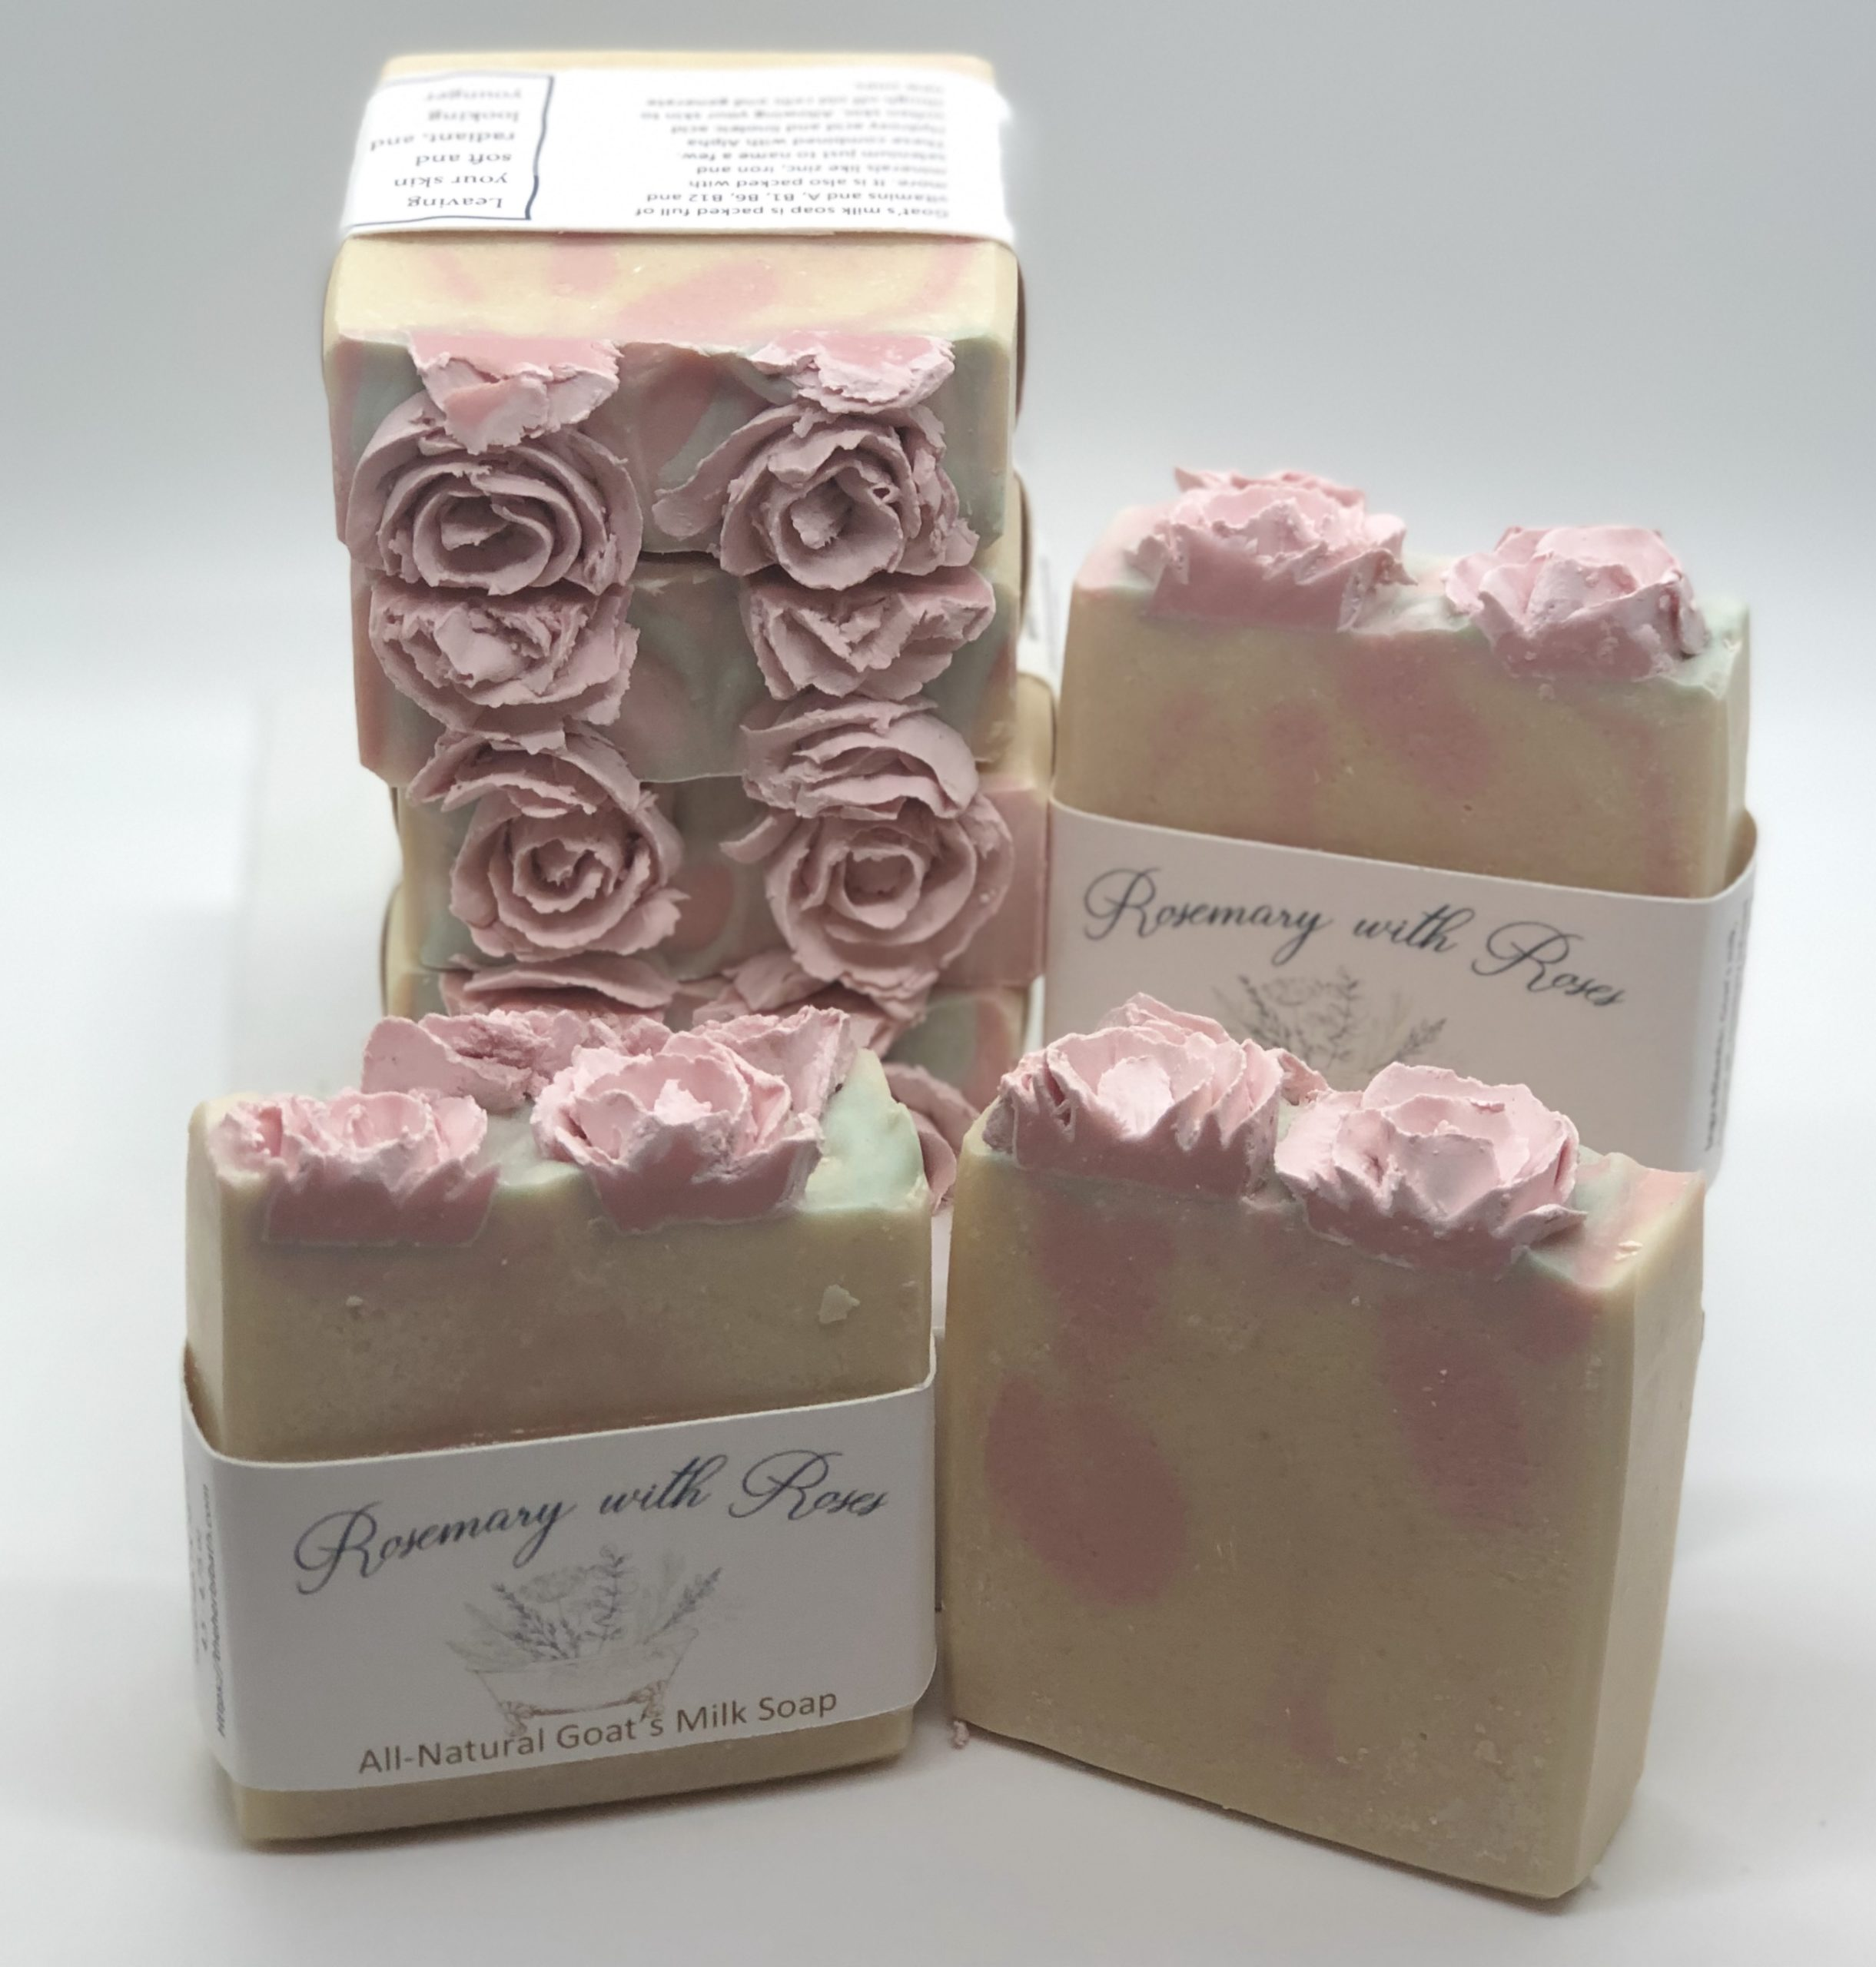 Rosemary with roses Soap